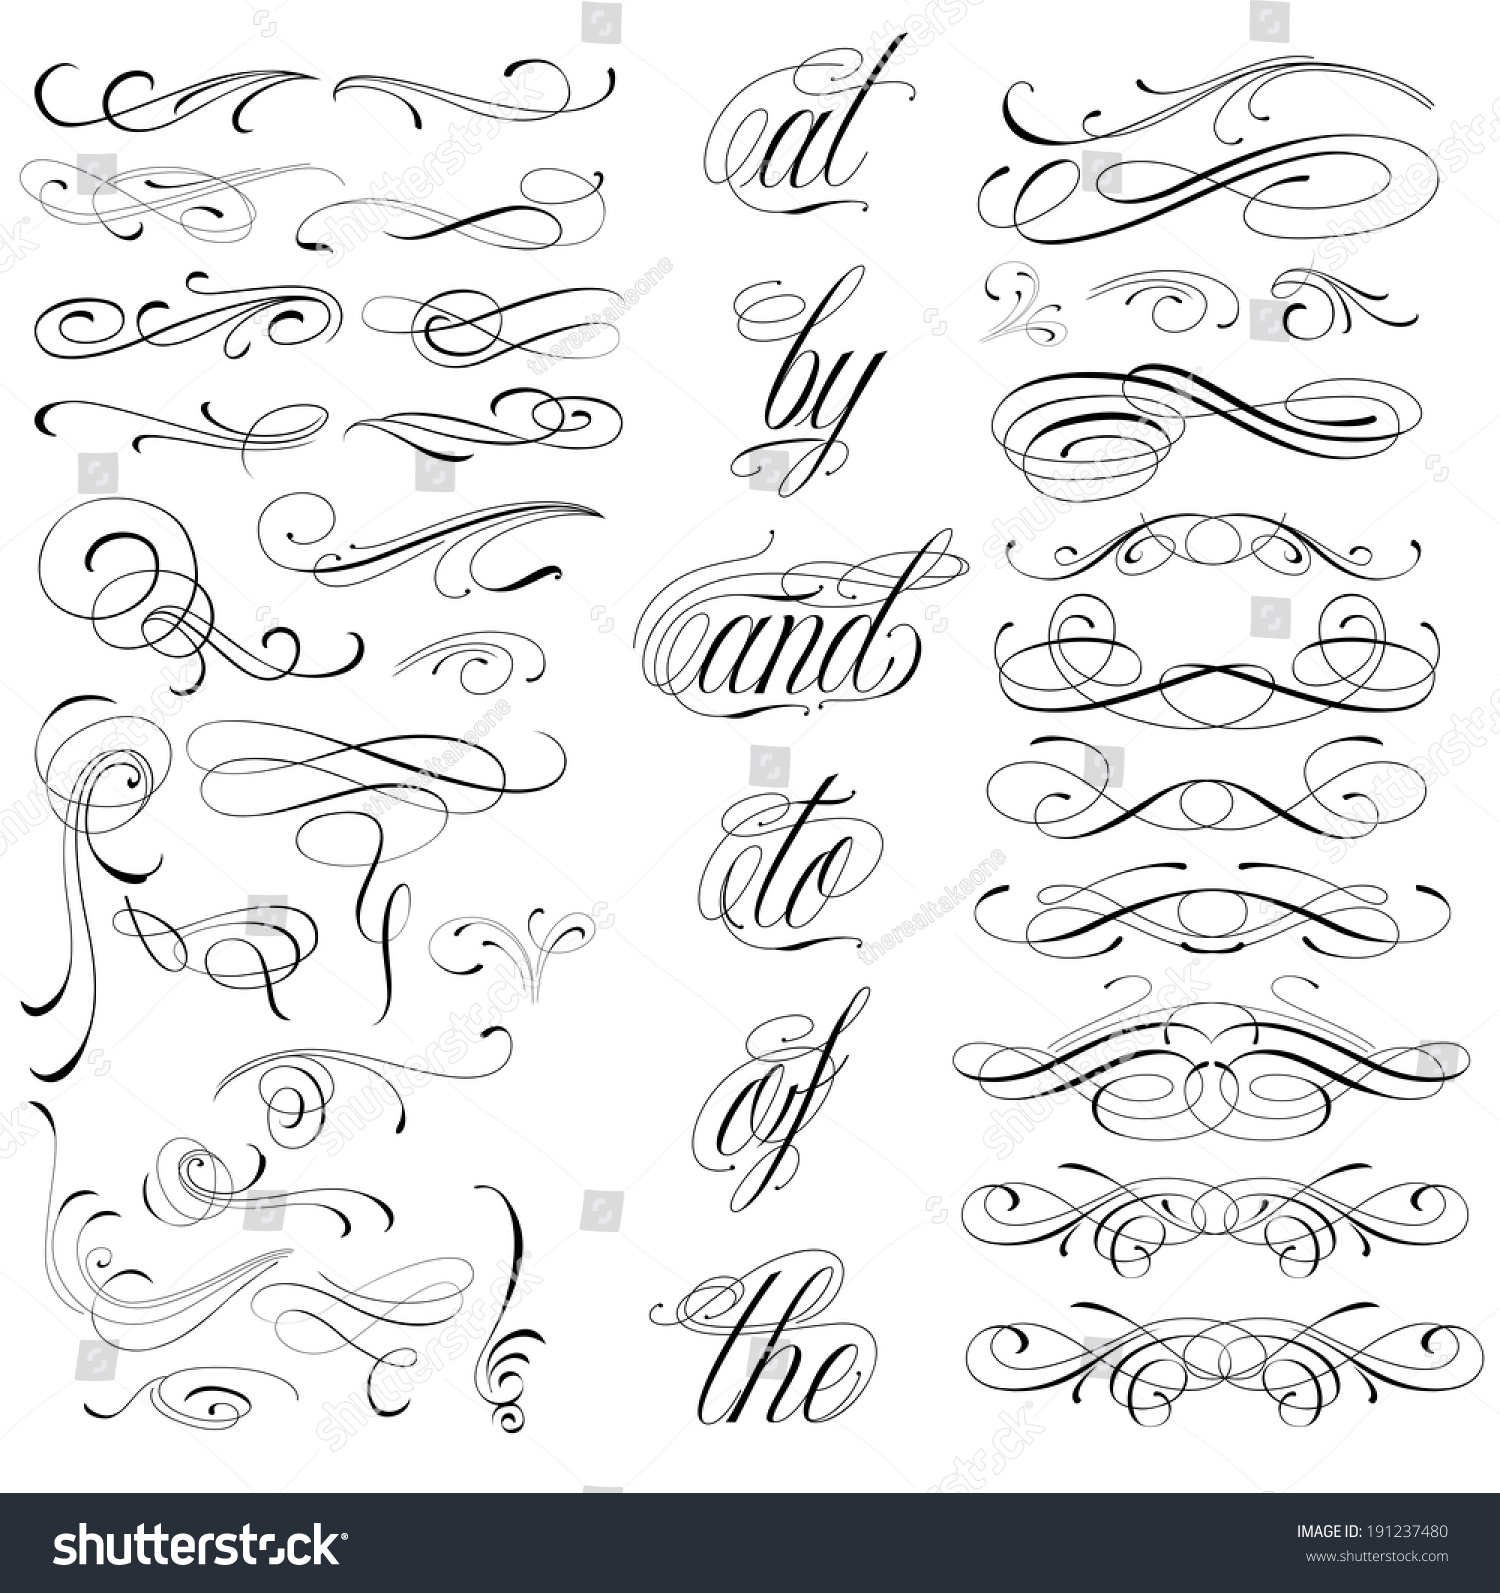 Handmade Tattoo Lettering Decorative Elements Stock Vector ...